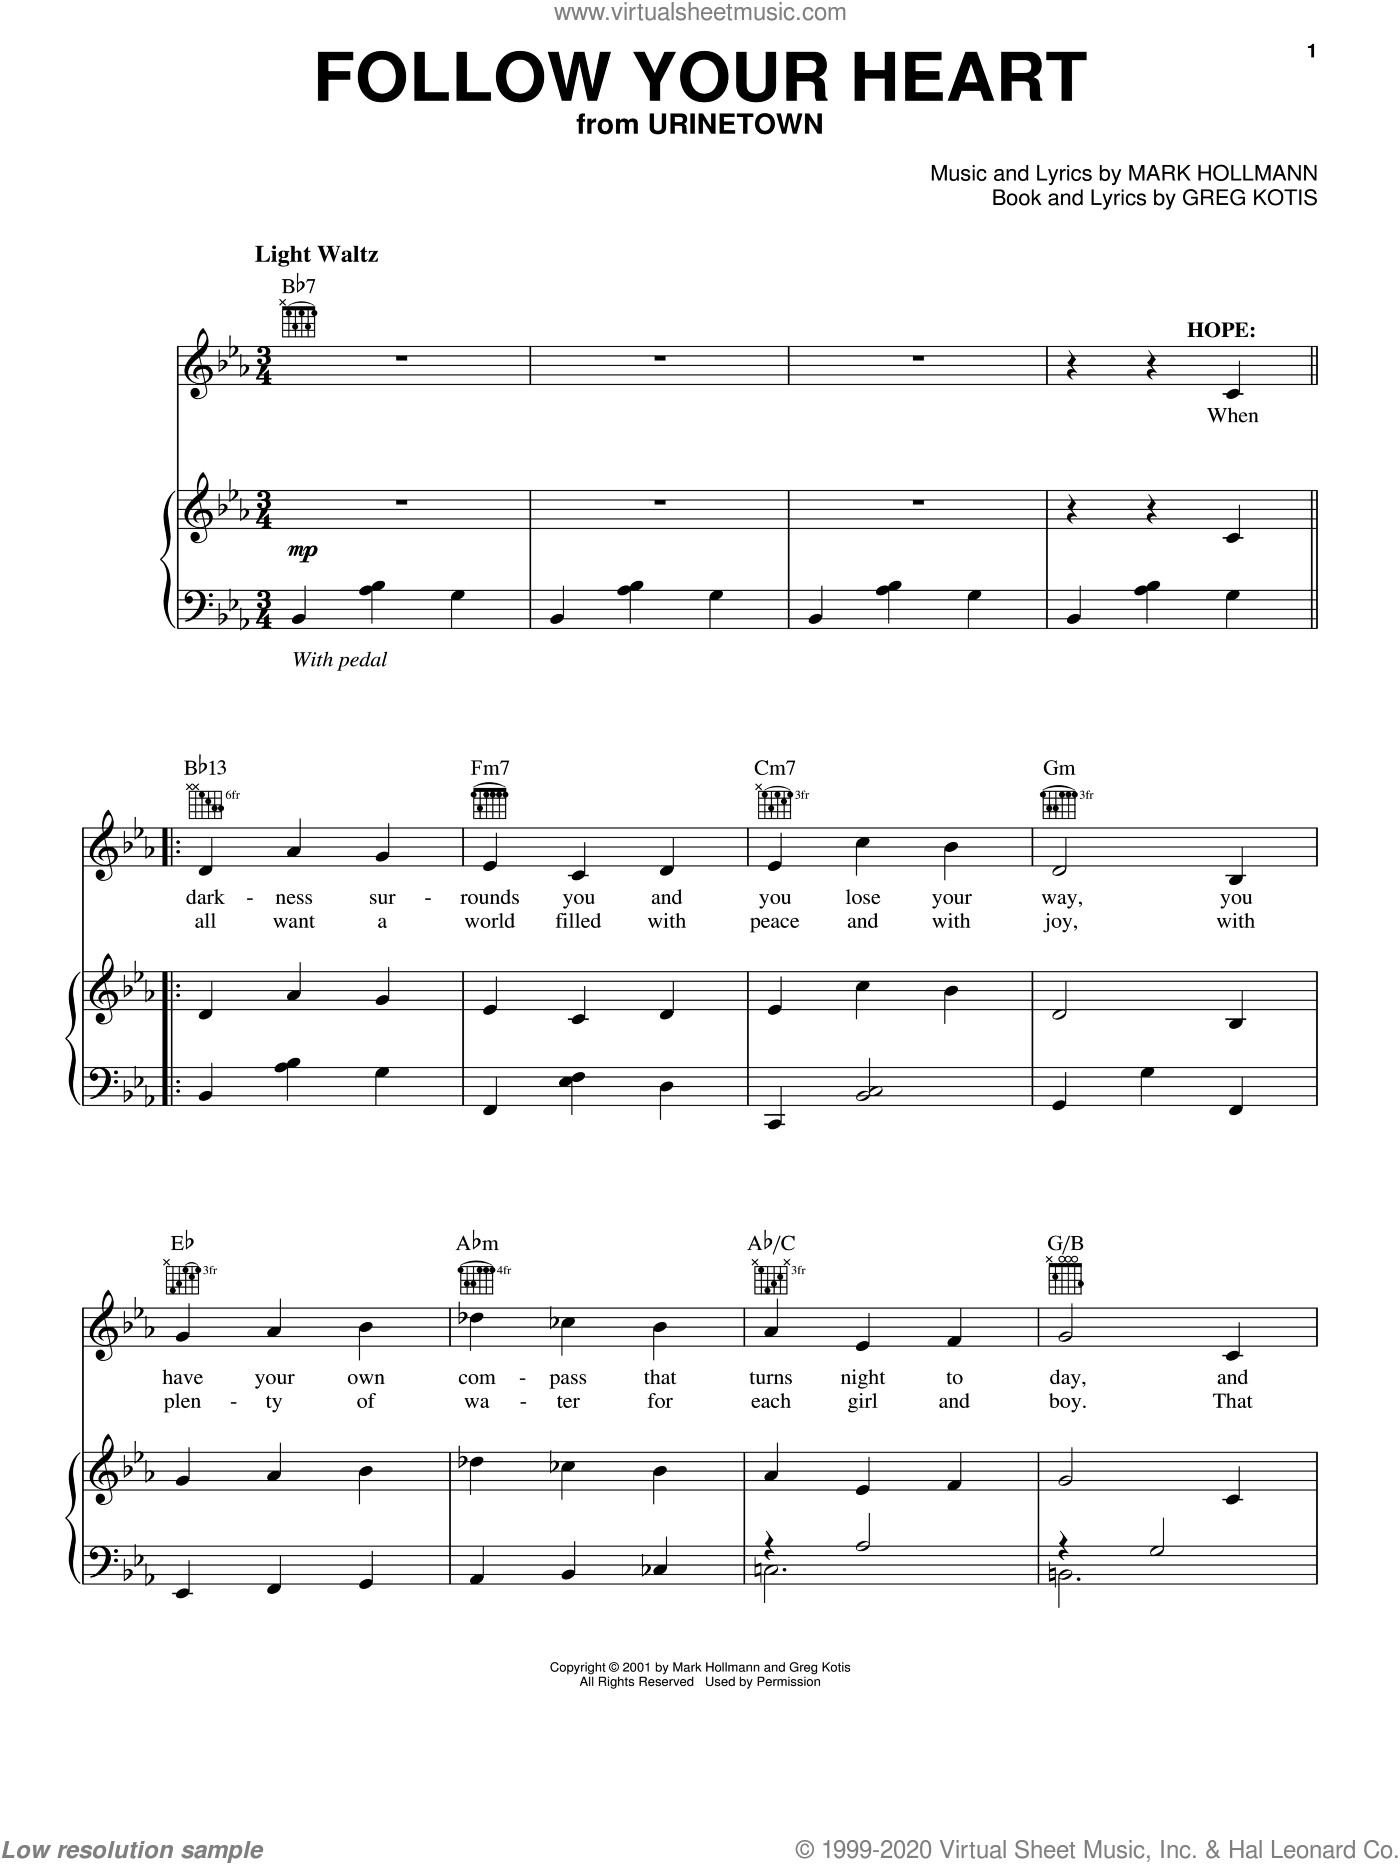 Follow Your Heart sheet music for voice, piano or guitar by Urinetown (Musical), Greg Kotis and Mark Hollmann, intermediate skill level